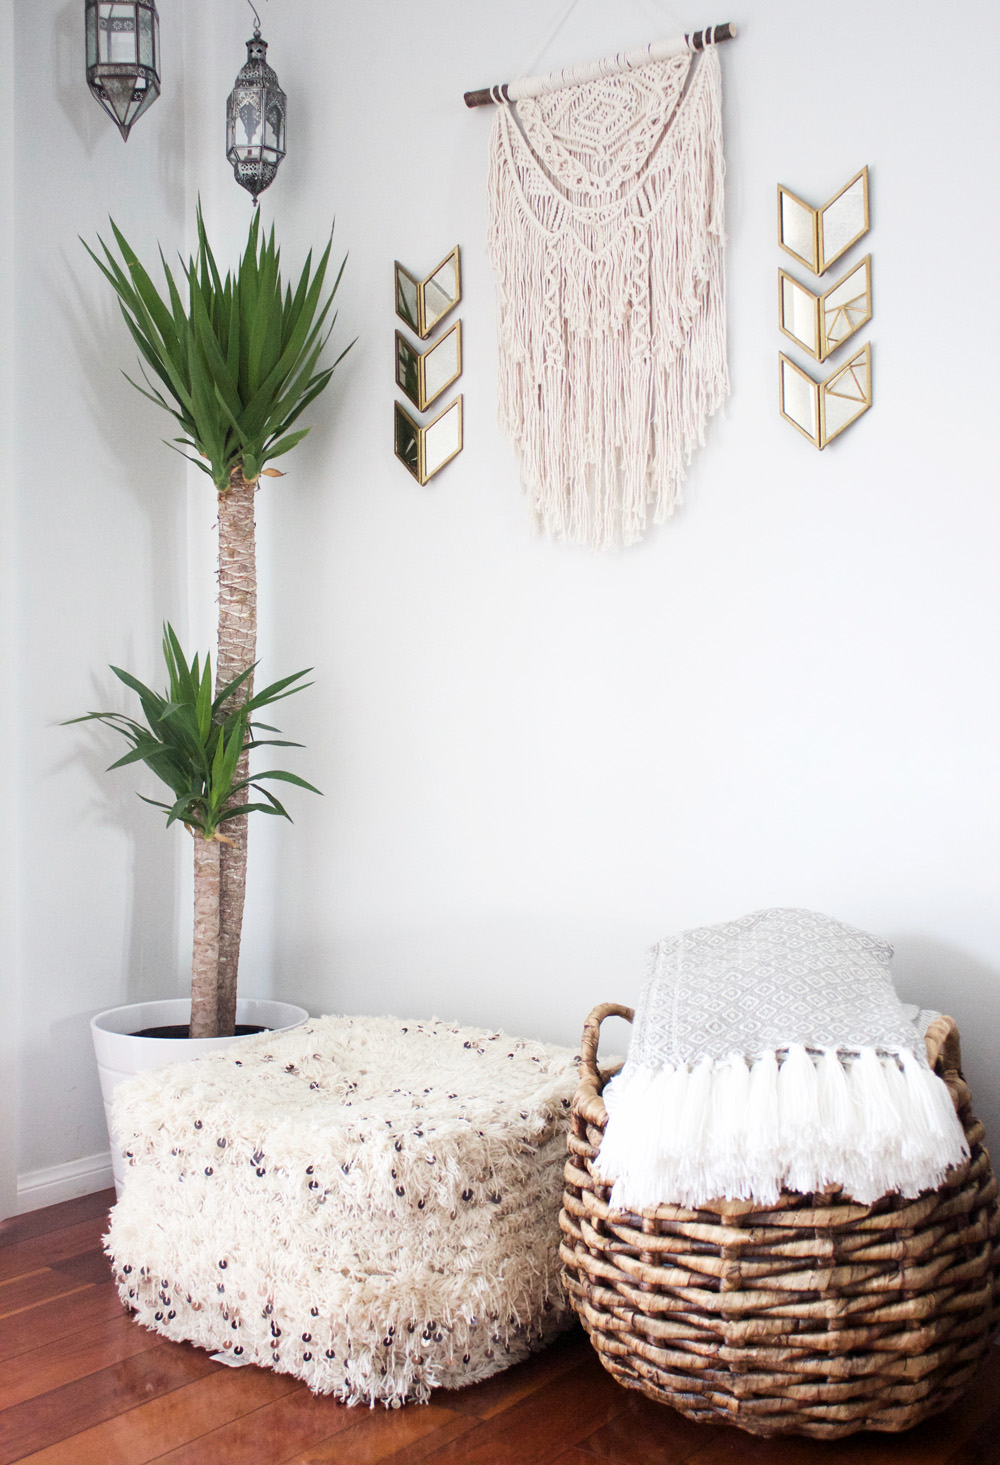 home decor, house, home inspo, home inspiration, home, inspiration, living room makeover, home makeover, diy, home improvement, decorations, boho, moroccan, vibes,